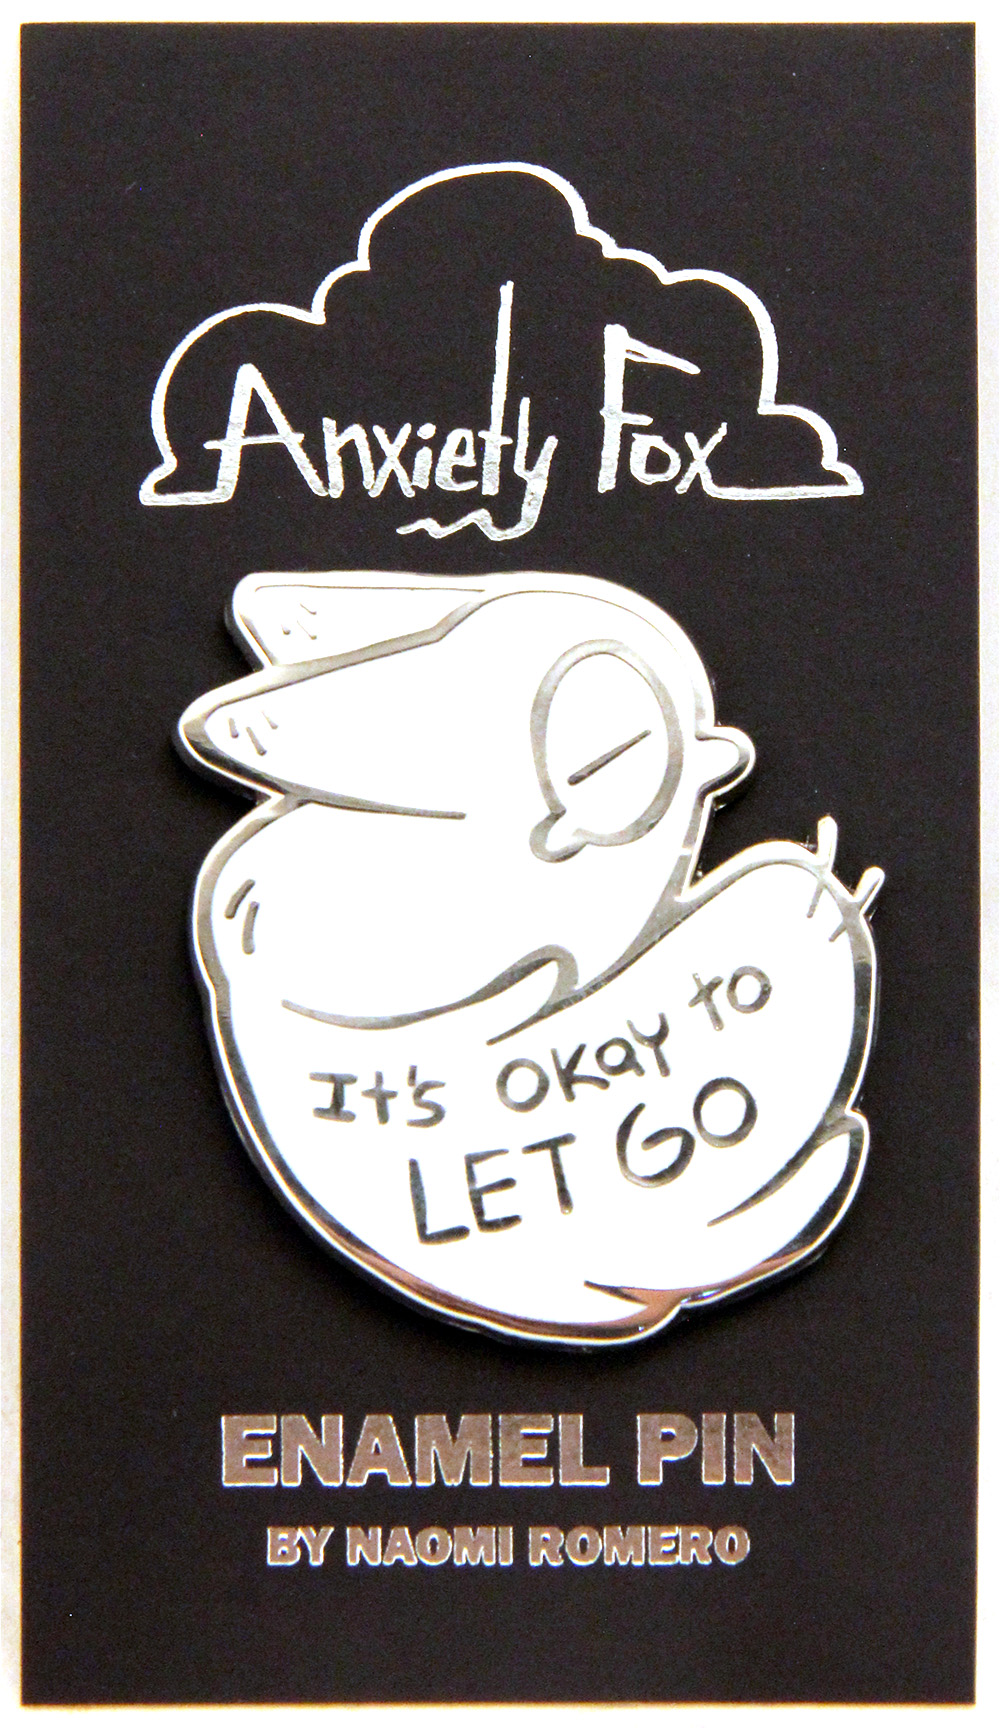 It's Okay To Let Go - Anxiety Fox Enamel Pin, Naomi Romero